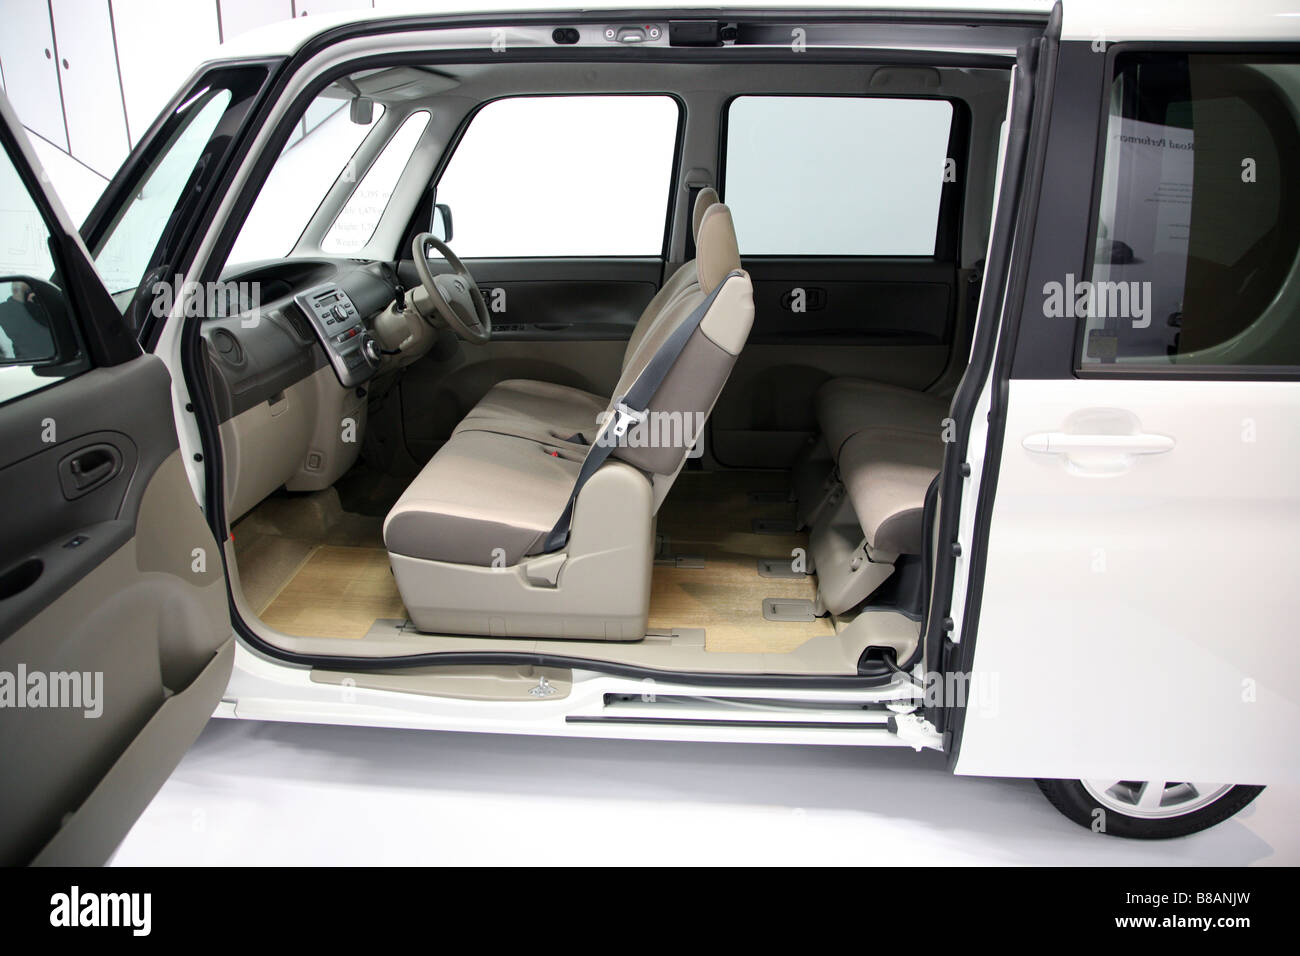 Spacious interior of small Japanese city concept car on show in Science Museum, London - Stock Image